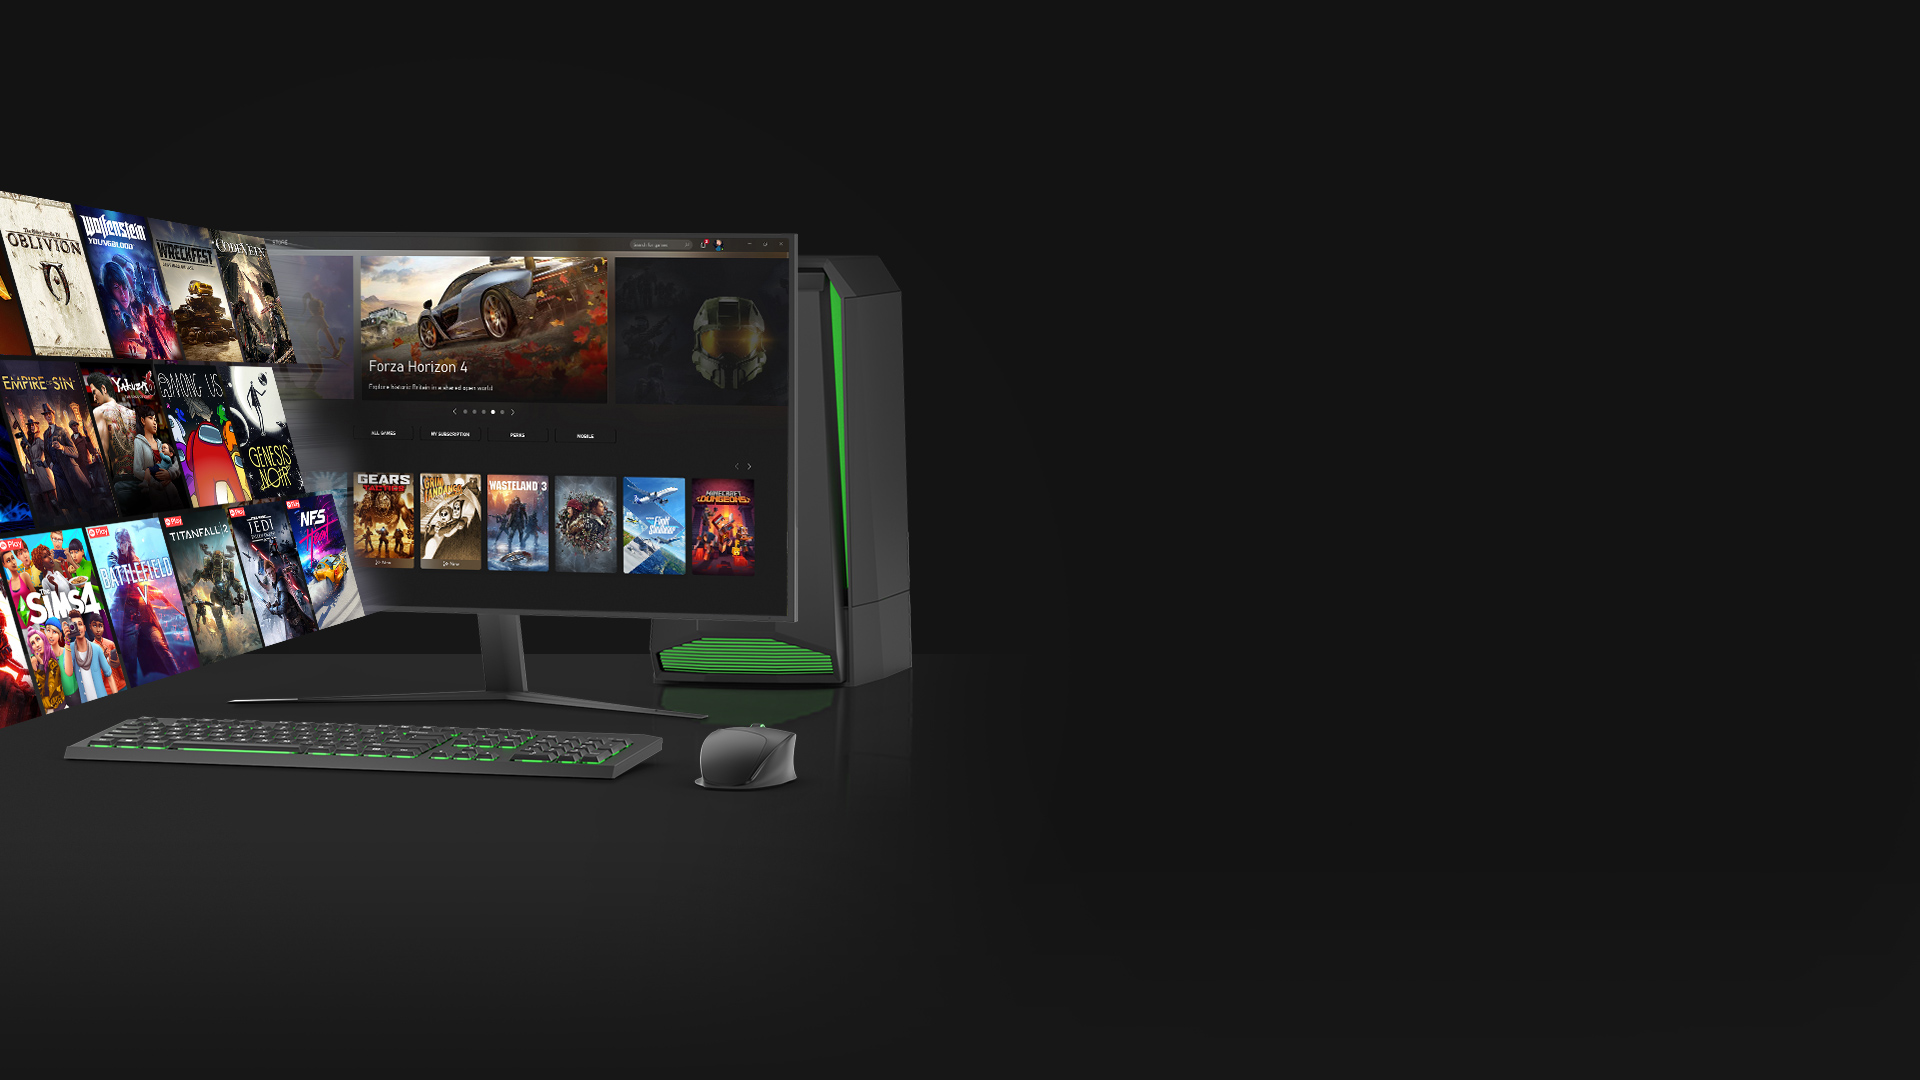 A gallery of PC games emerges from a PC monitor showing the Xbox App for Windows 10.